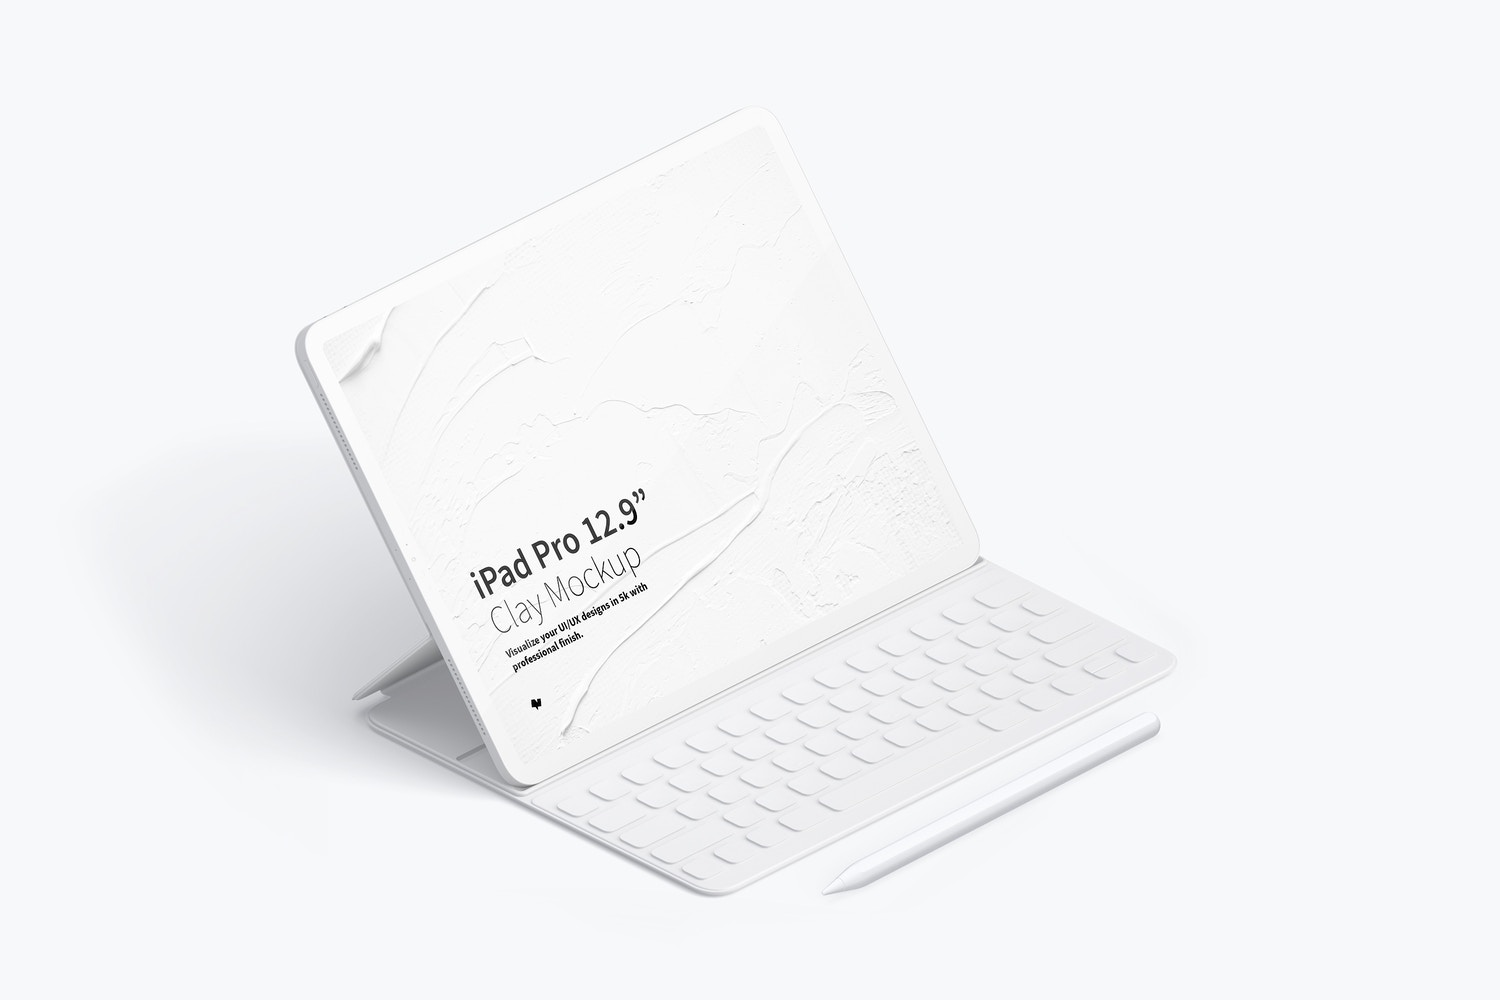 "Clay iPad Pro 12.9"" Mockup, Isometric Left View With Keyboard by Original Mockups on Original Mockups"